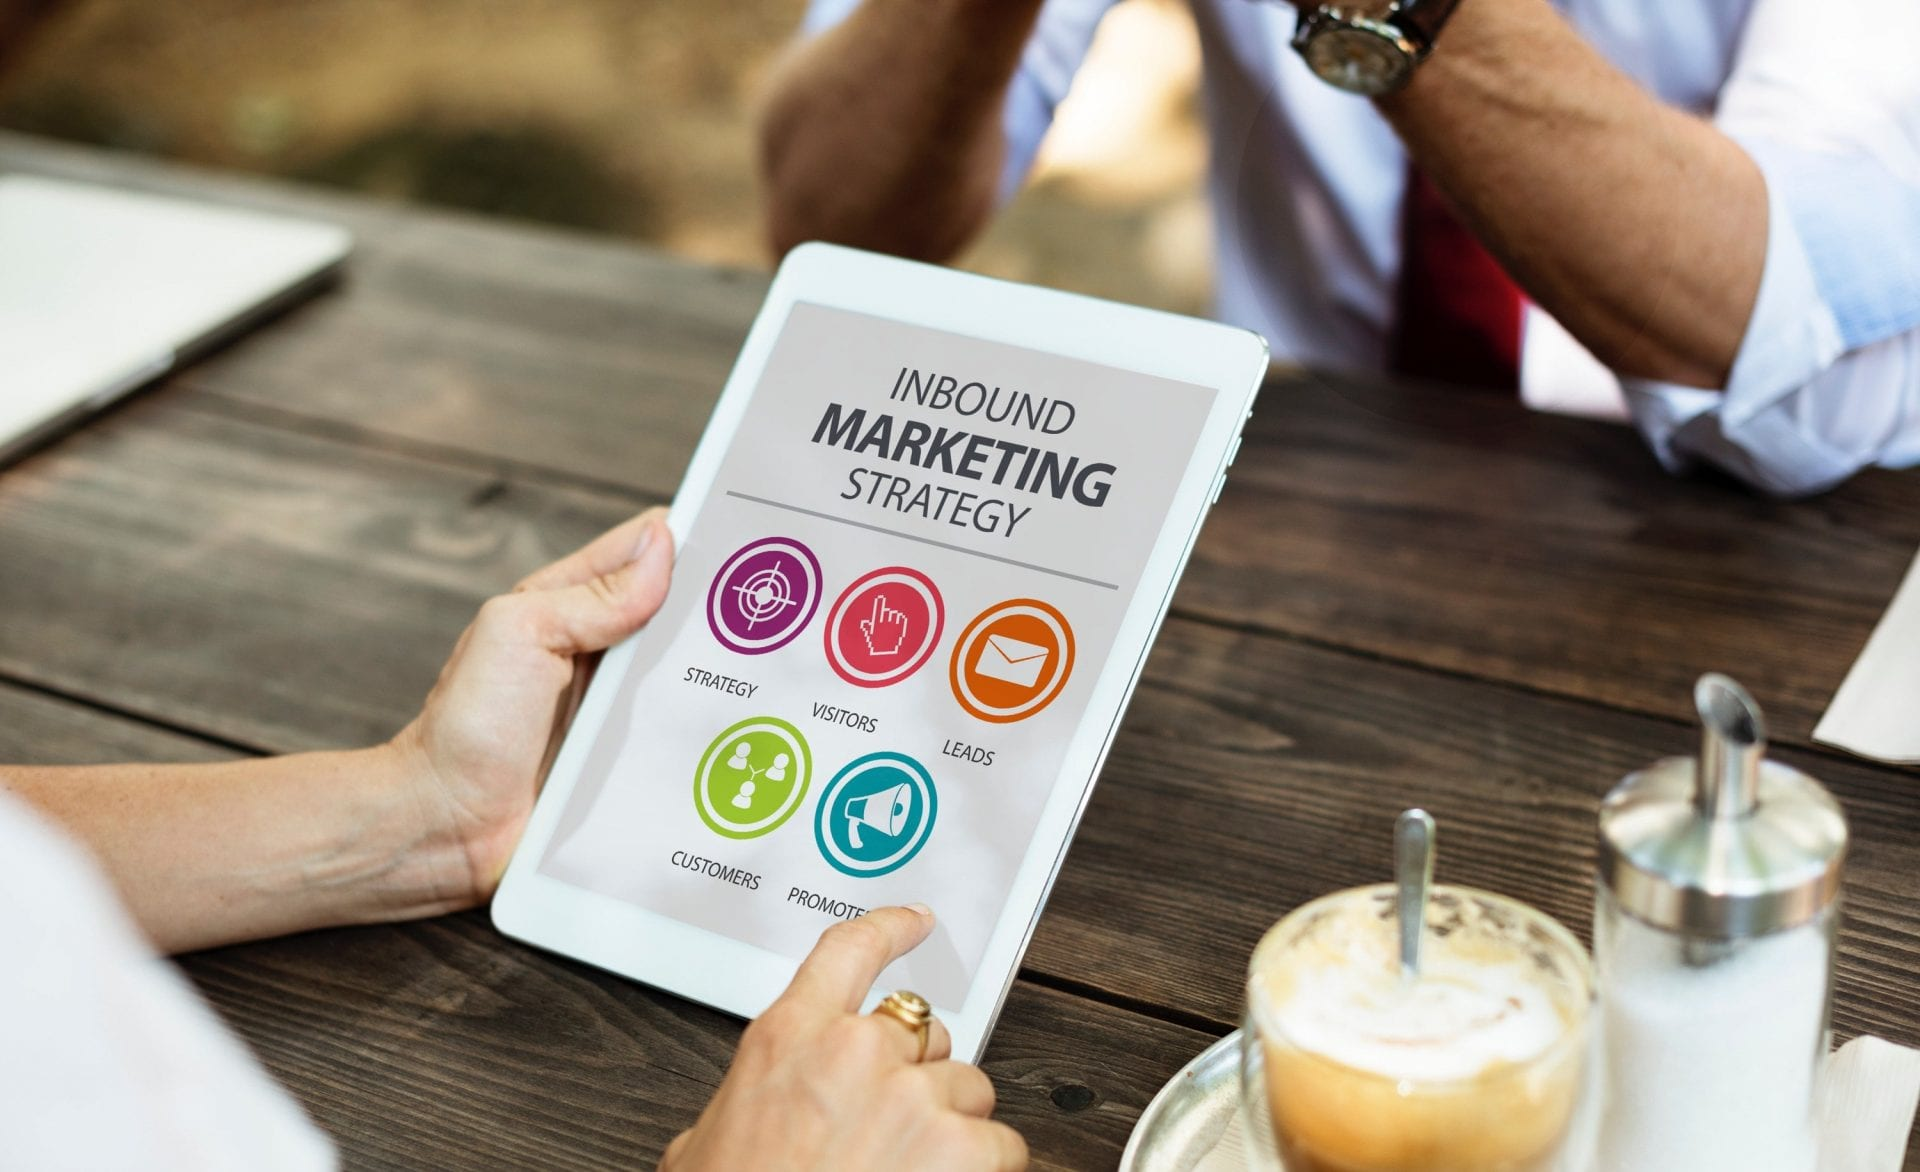 Inbound Marketing Strategy Book